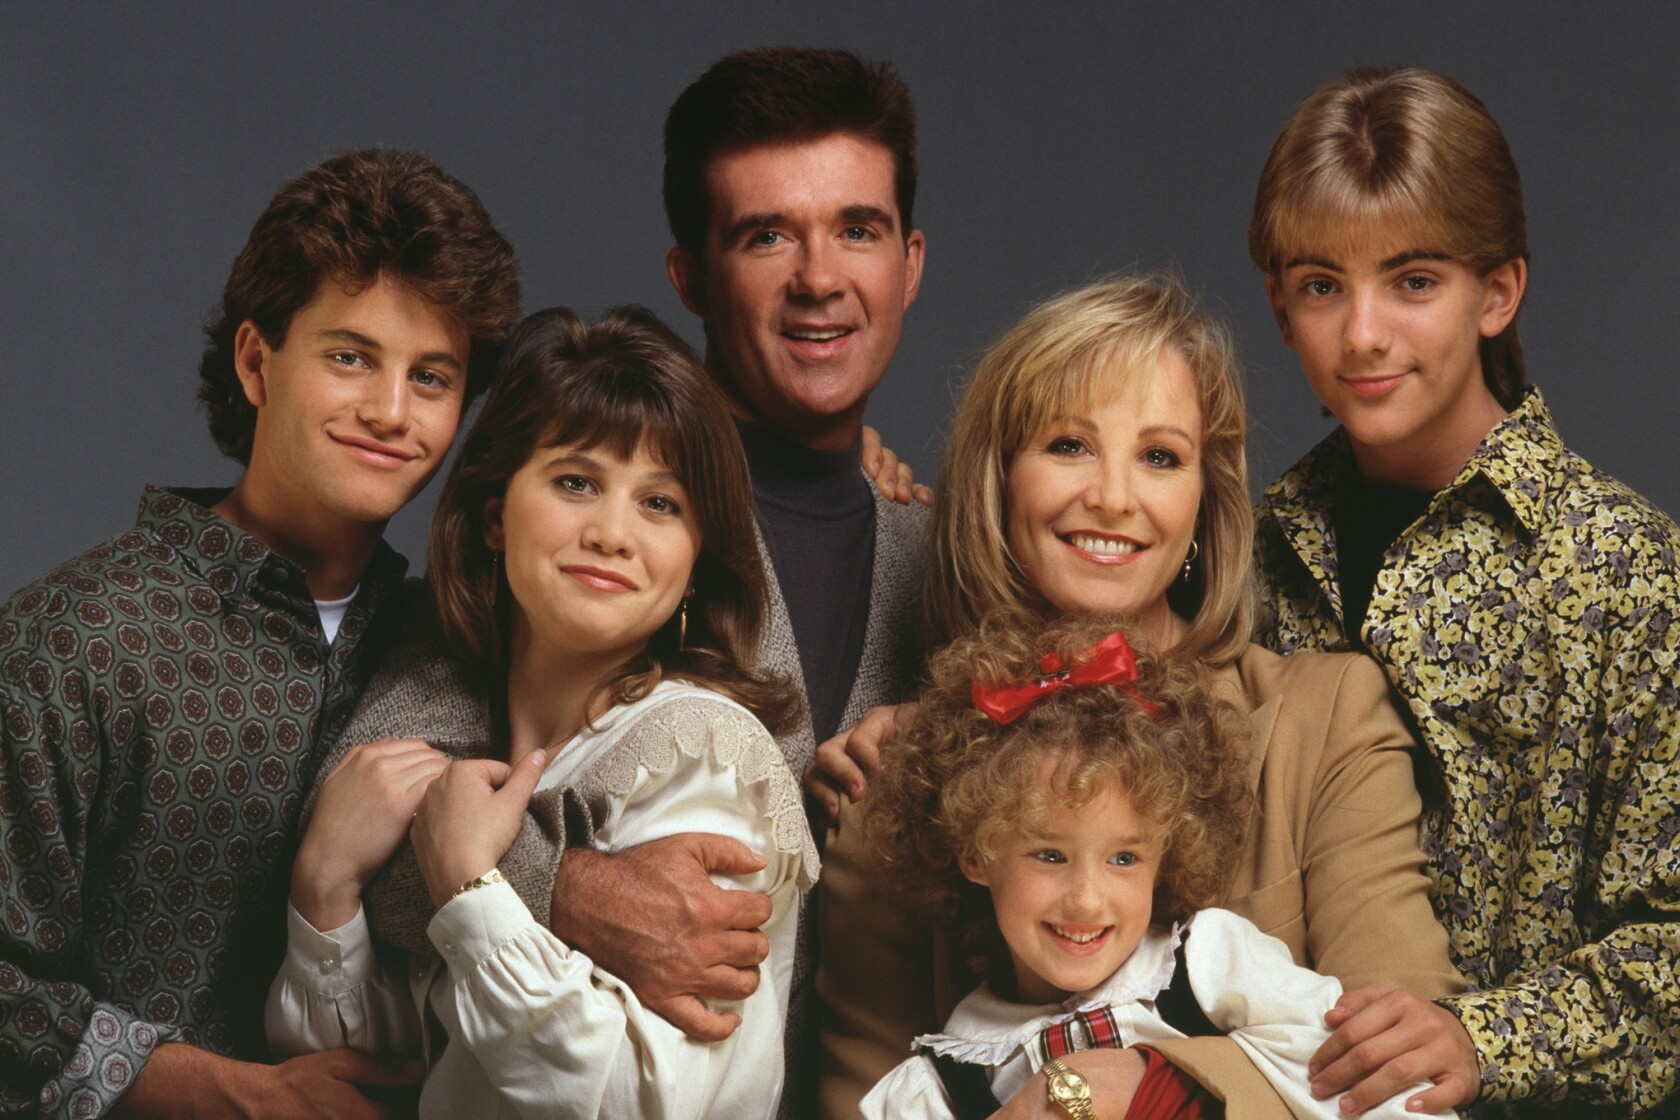 Alan Thicke and the cast of 'Growing Pains' had to overcome